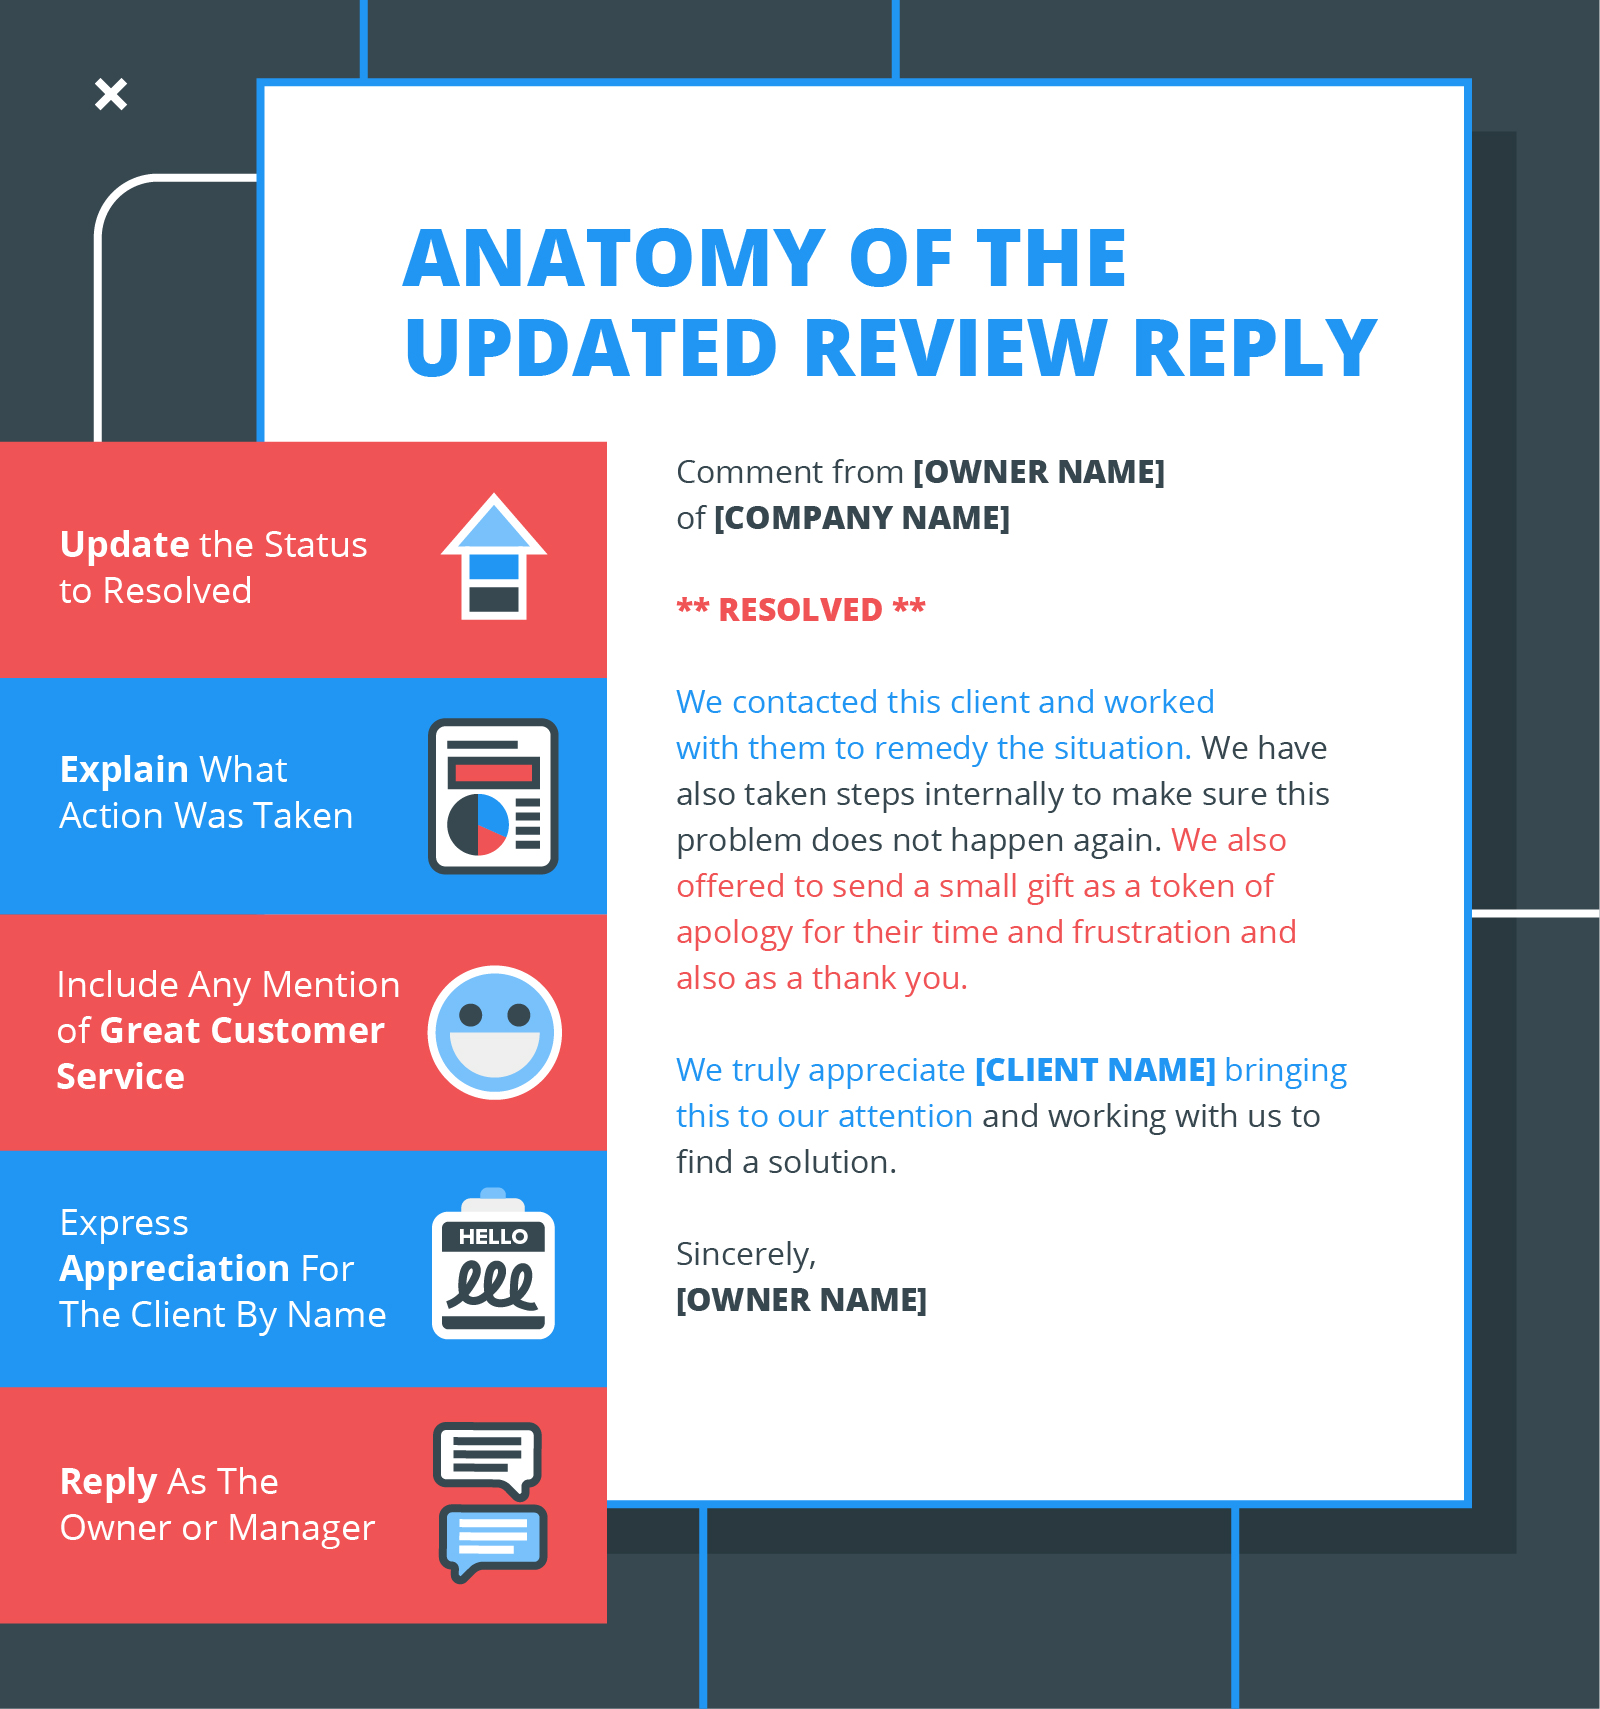 template for updating the review response from the company when action has been taken to remedy the situation.